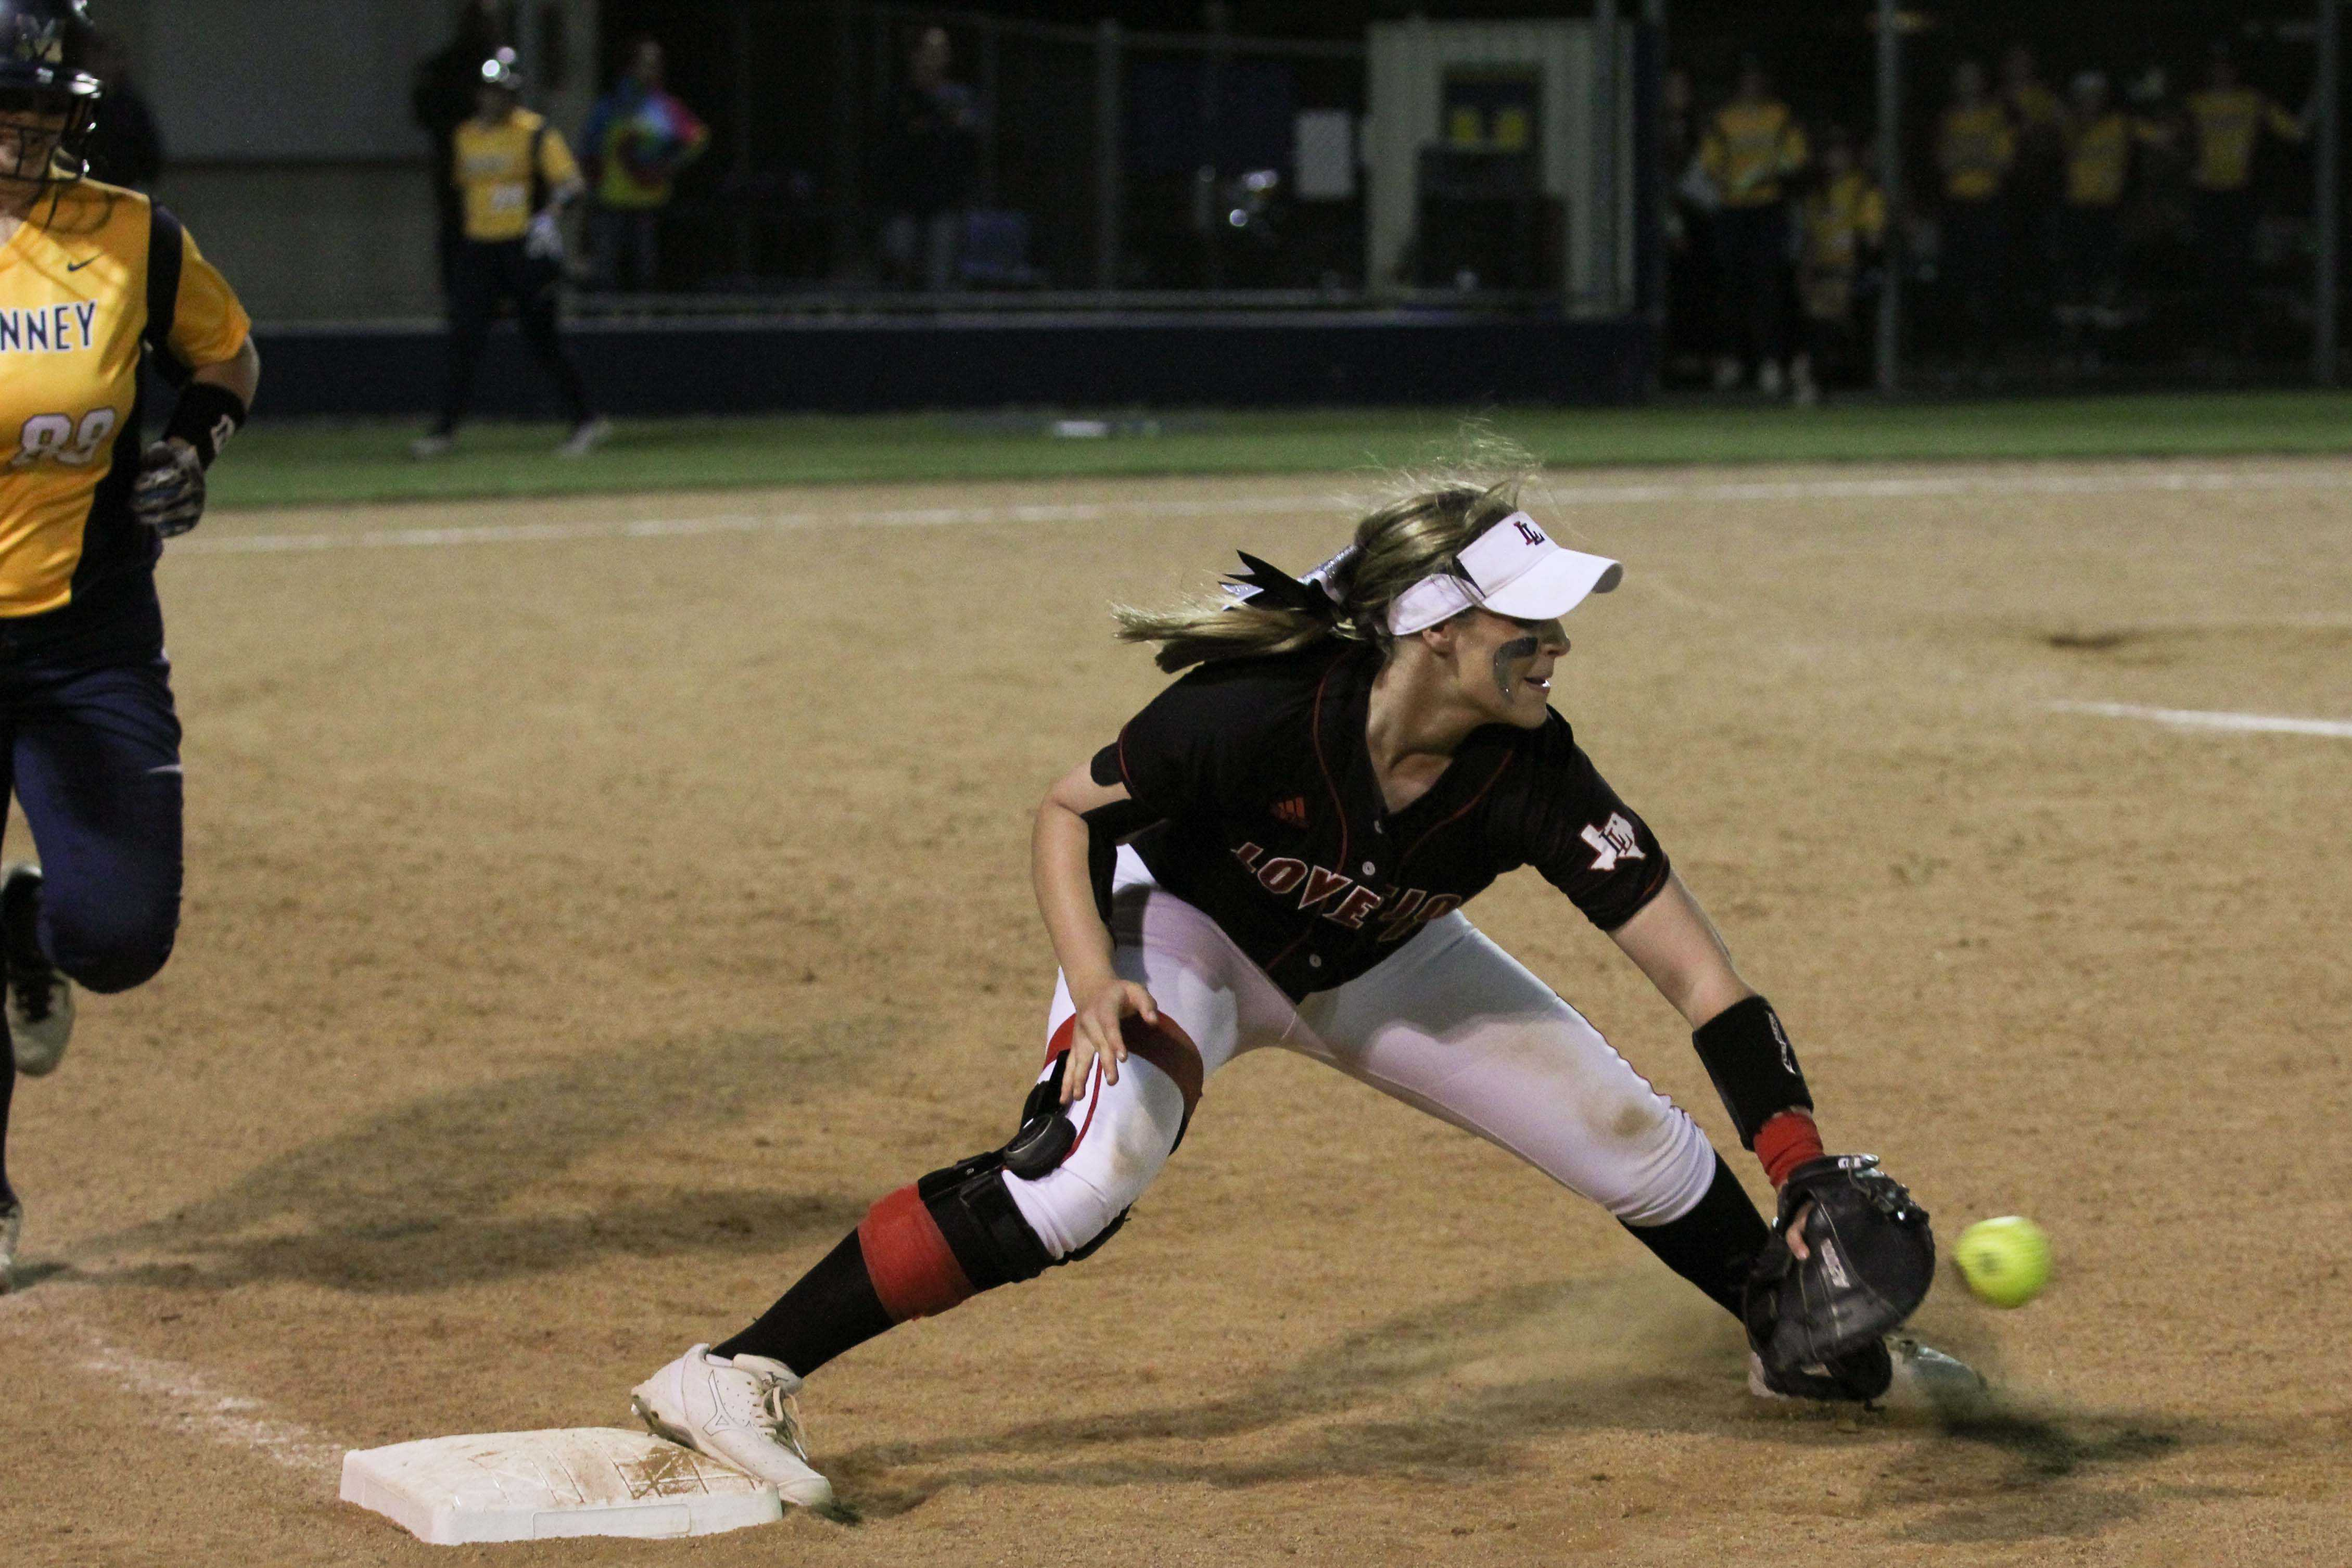 The softball team needs a win tonight over Rival Prosper to officially lock up a playoff spot.